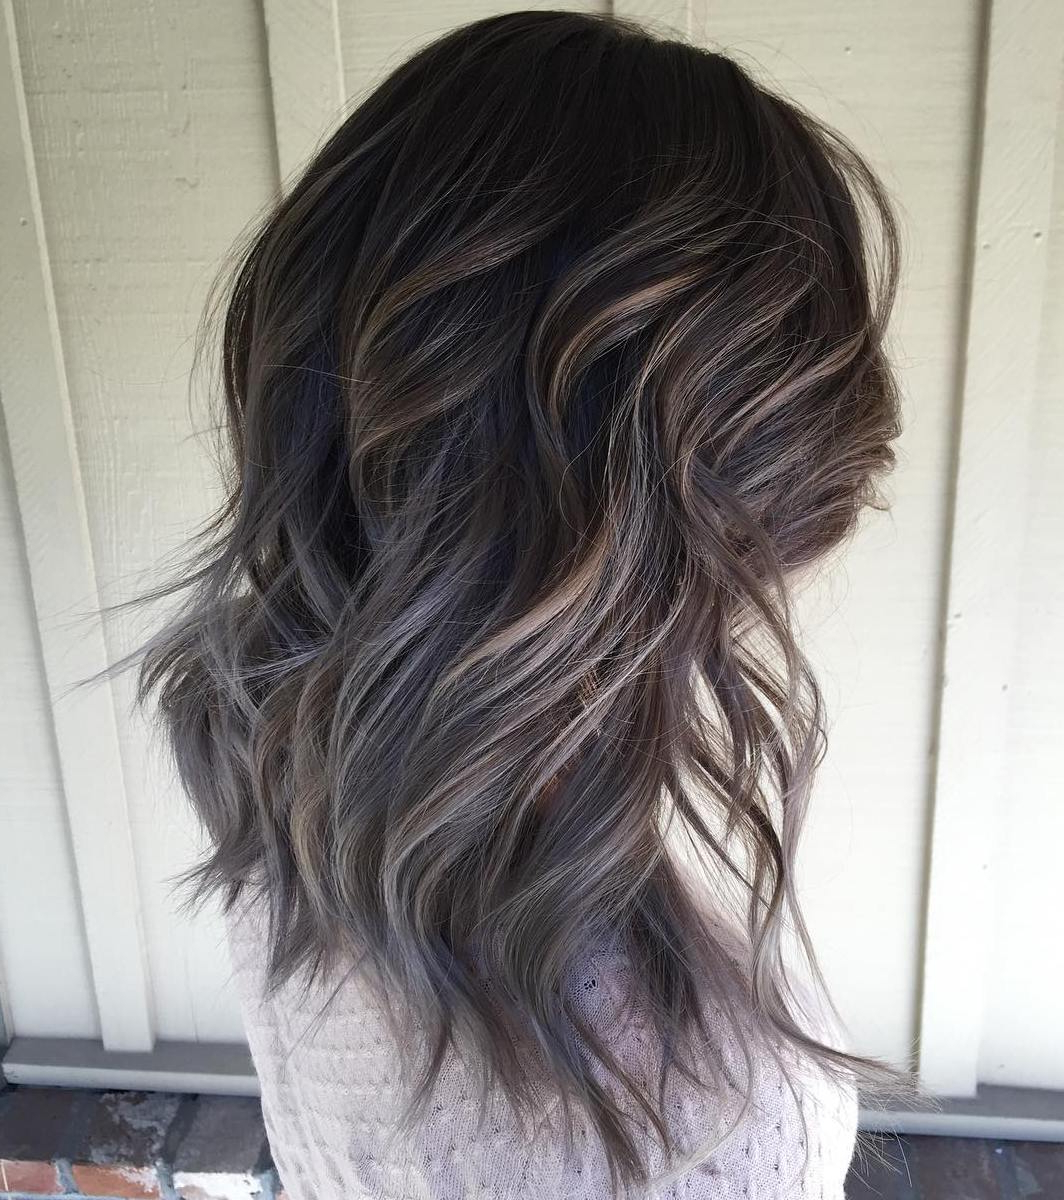 45 Ideas Of Gray And Silver Highlights On Brown Hair Inside Silver And Sophisticated Hairstyles (View 9 of 20)